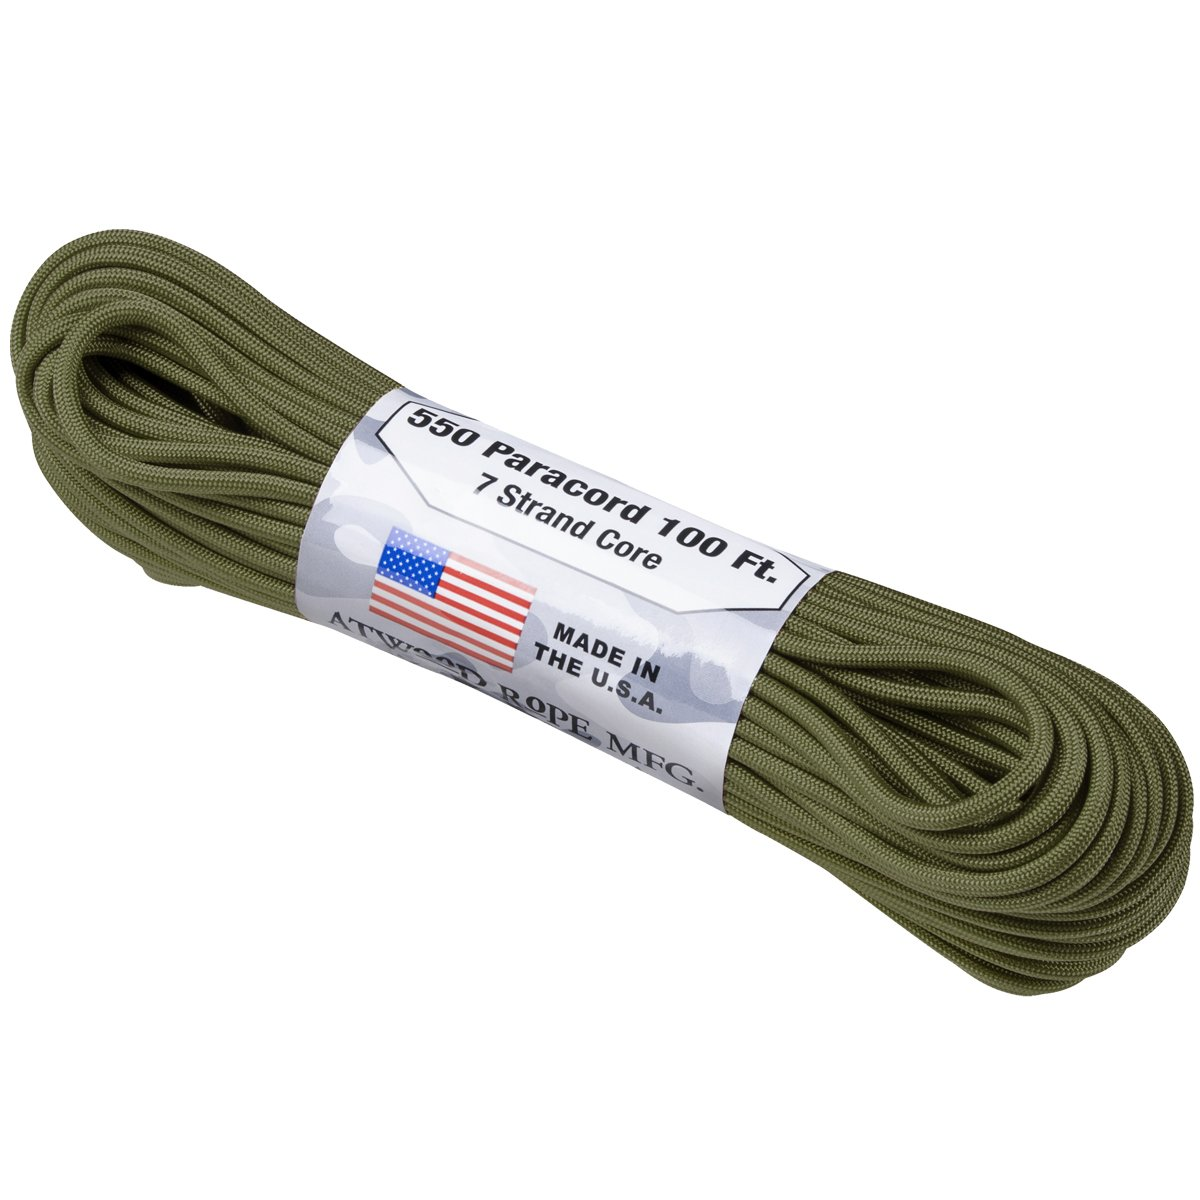 Atwood Rope 550 Lbs Para Cord Oliv Gr/ün